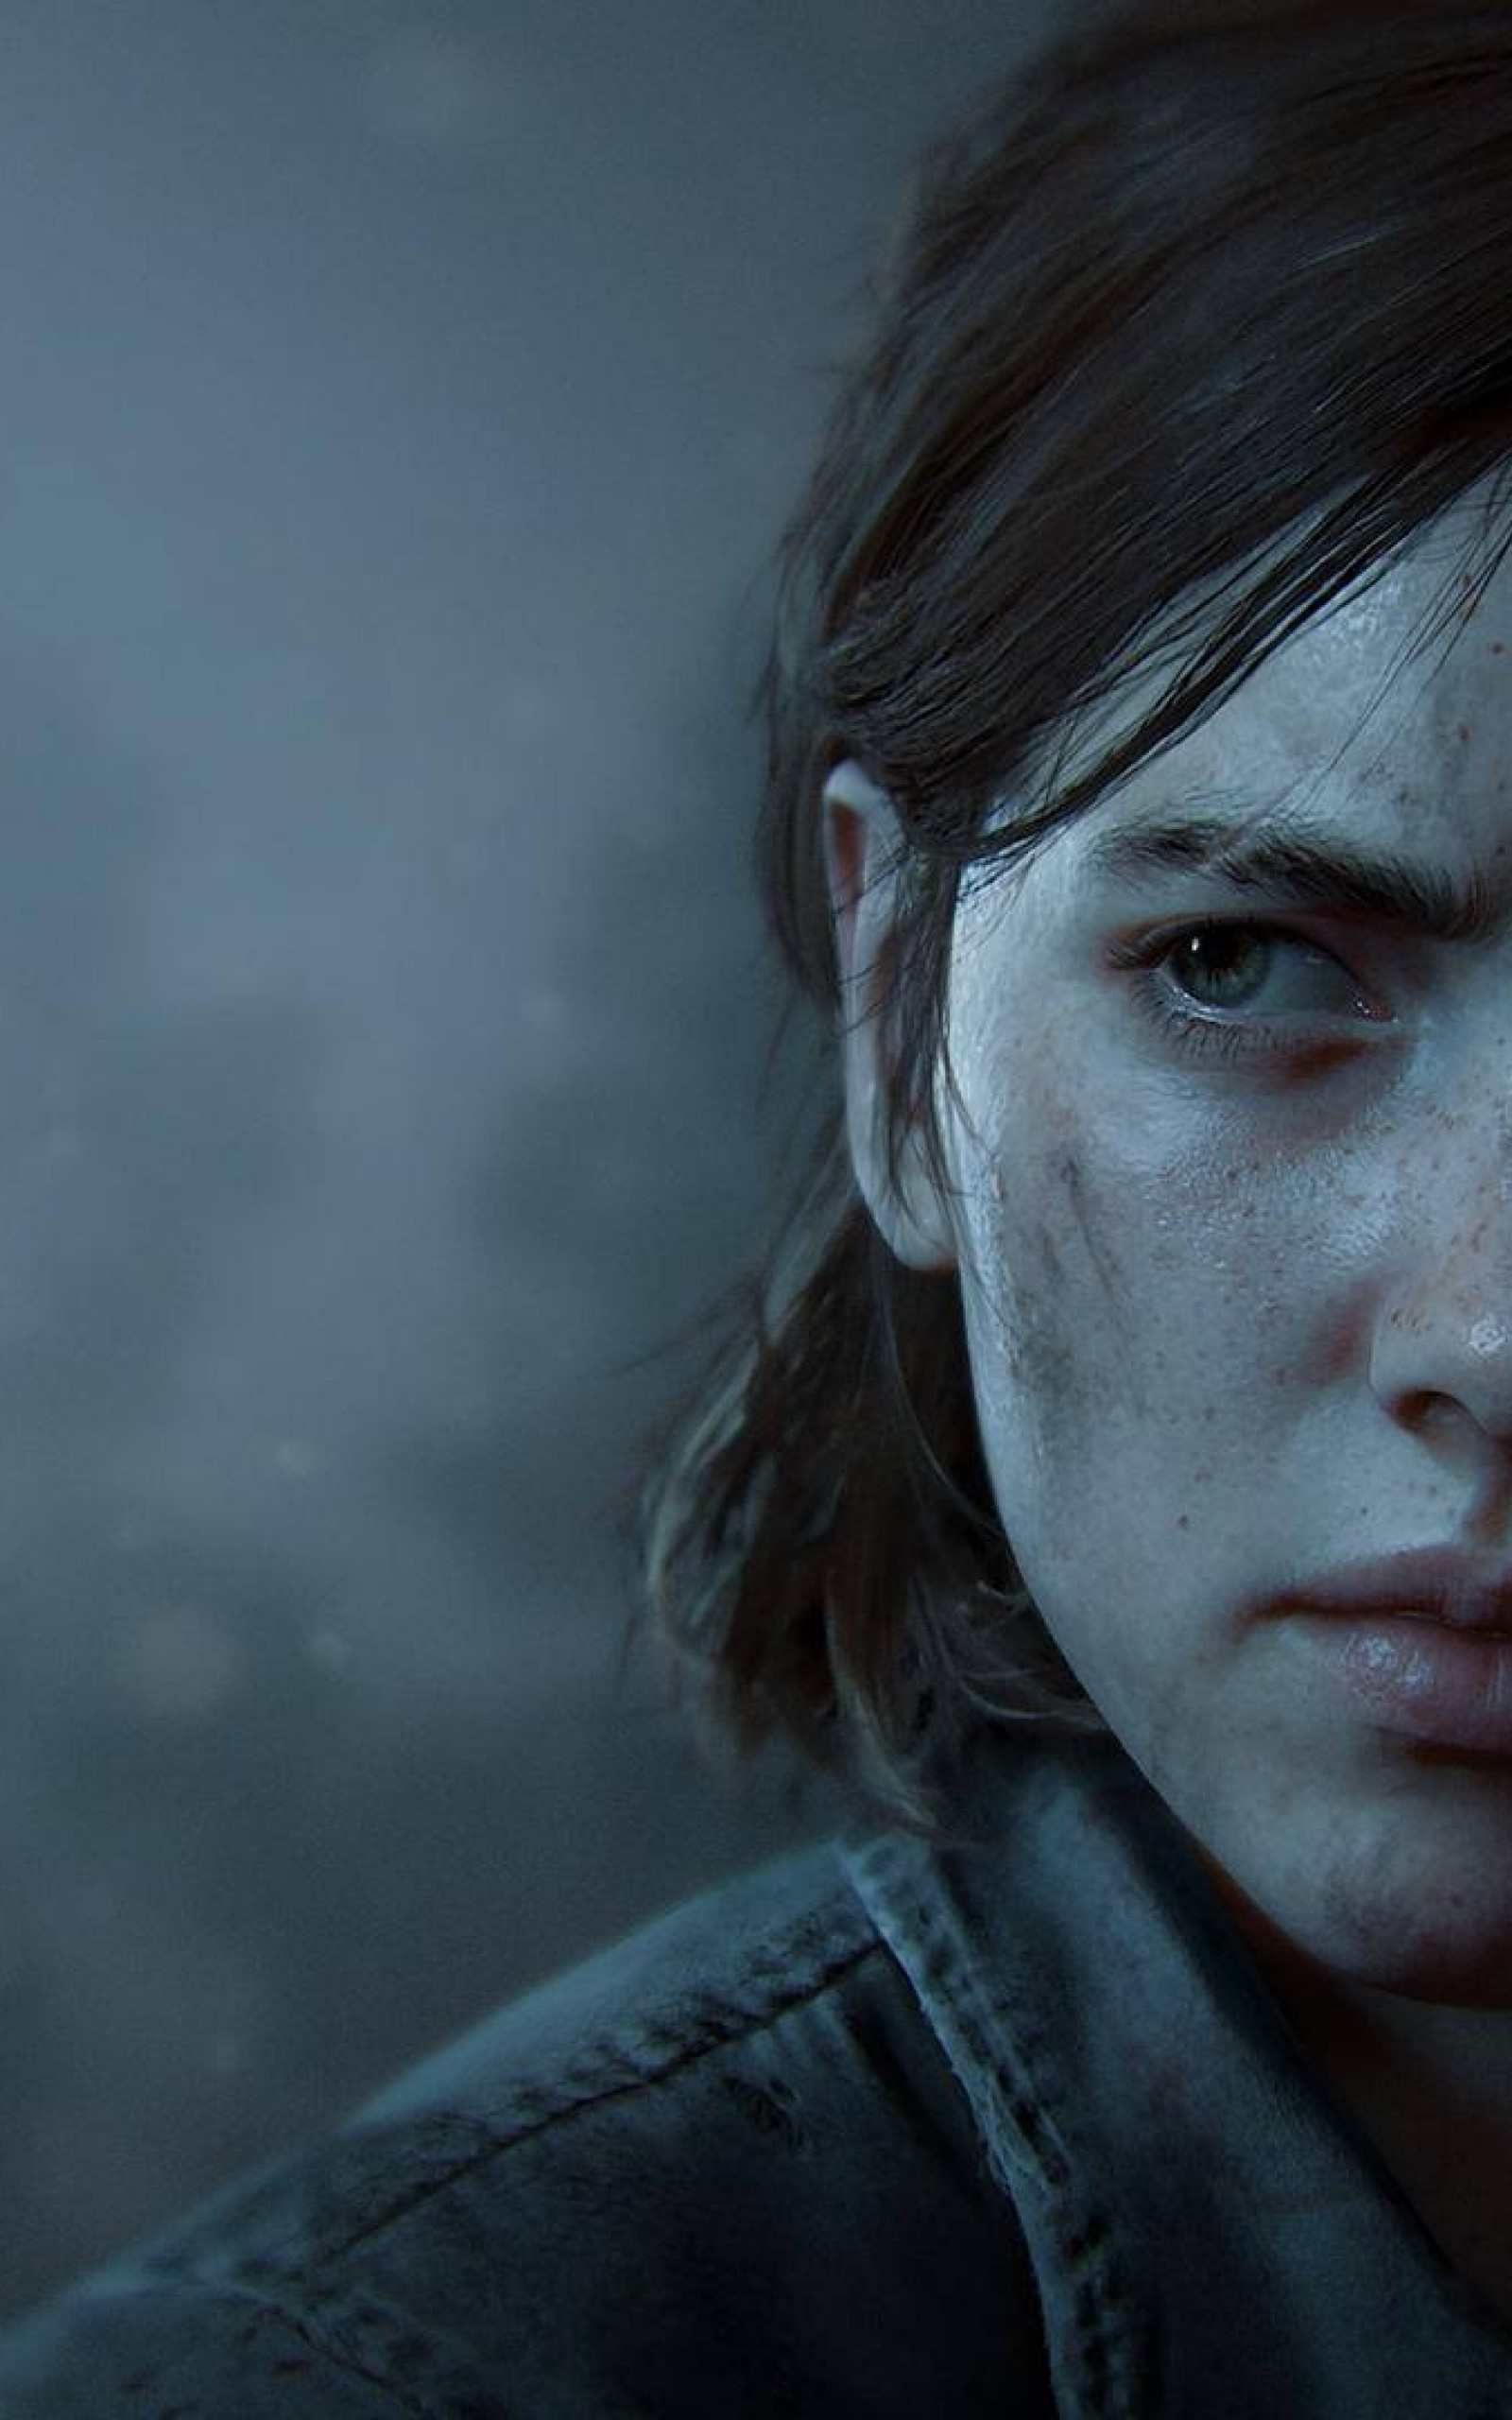 The Last Of Us Part 2 Ellie Face Portrait Ellie The Last Of Us